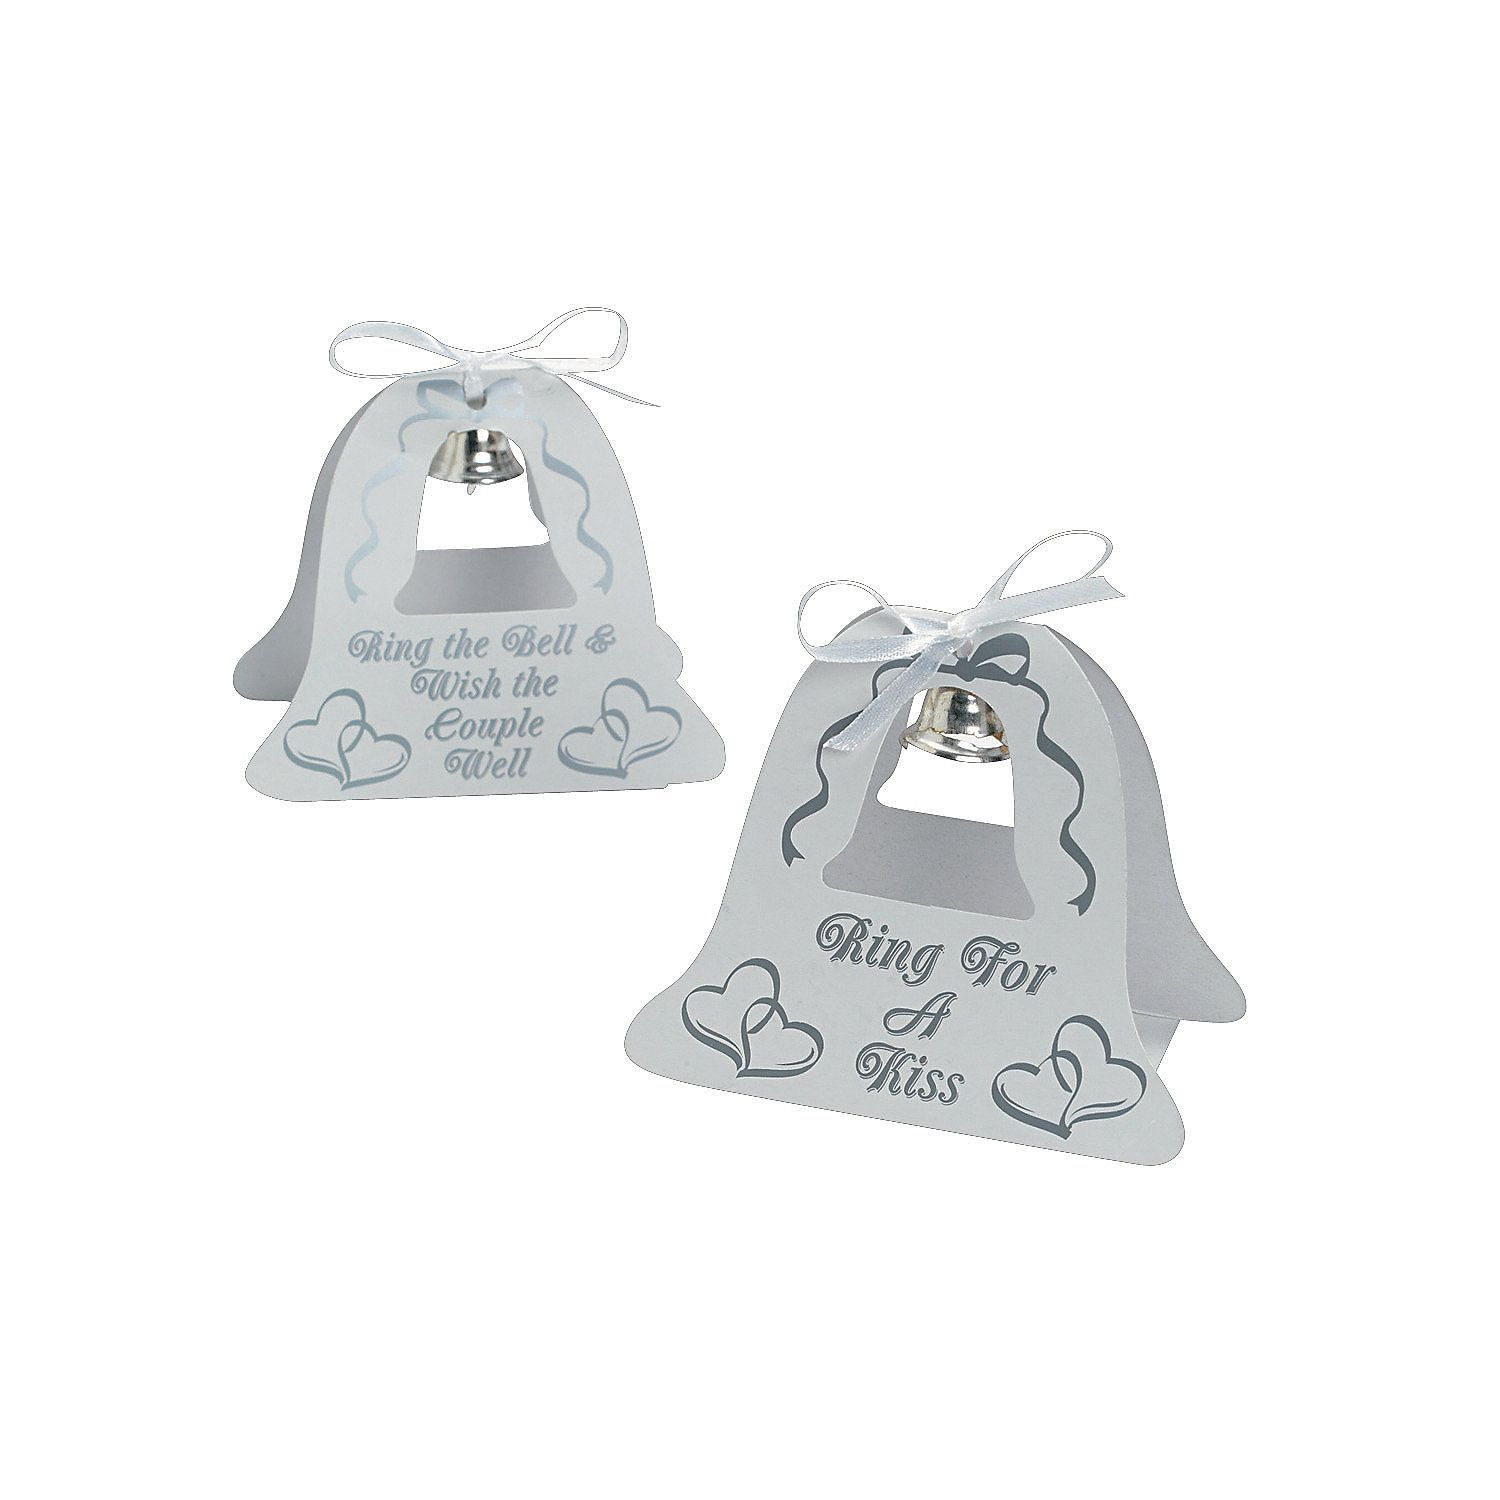 Silver Wedding Bell Tabletoppers - OrientalTrading.com   The little ...